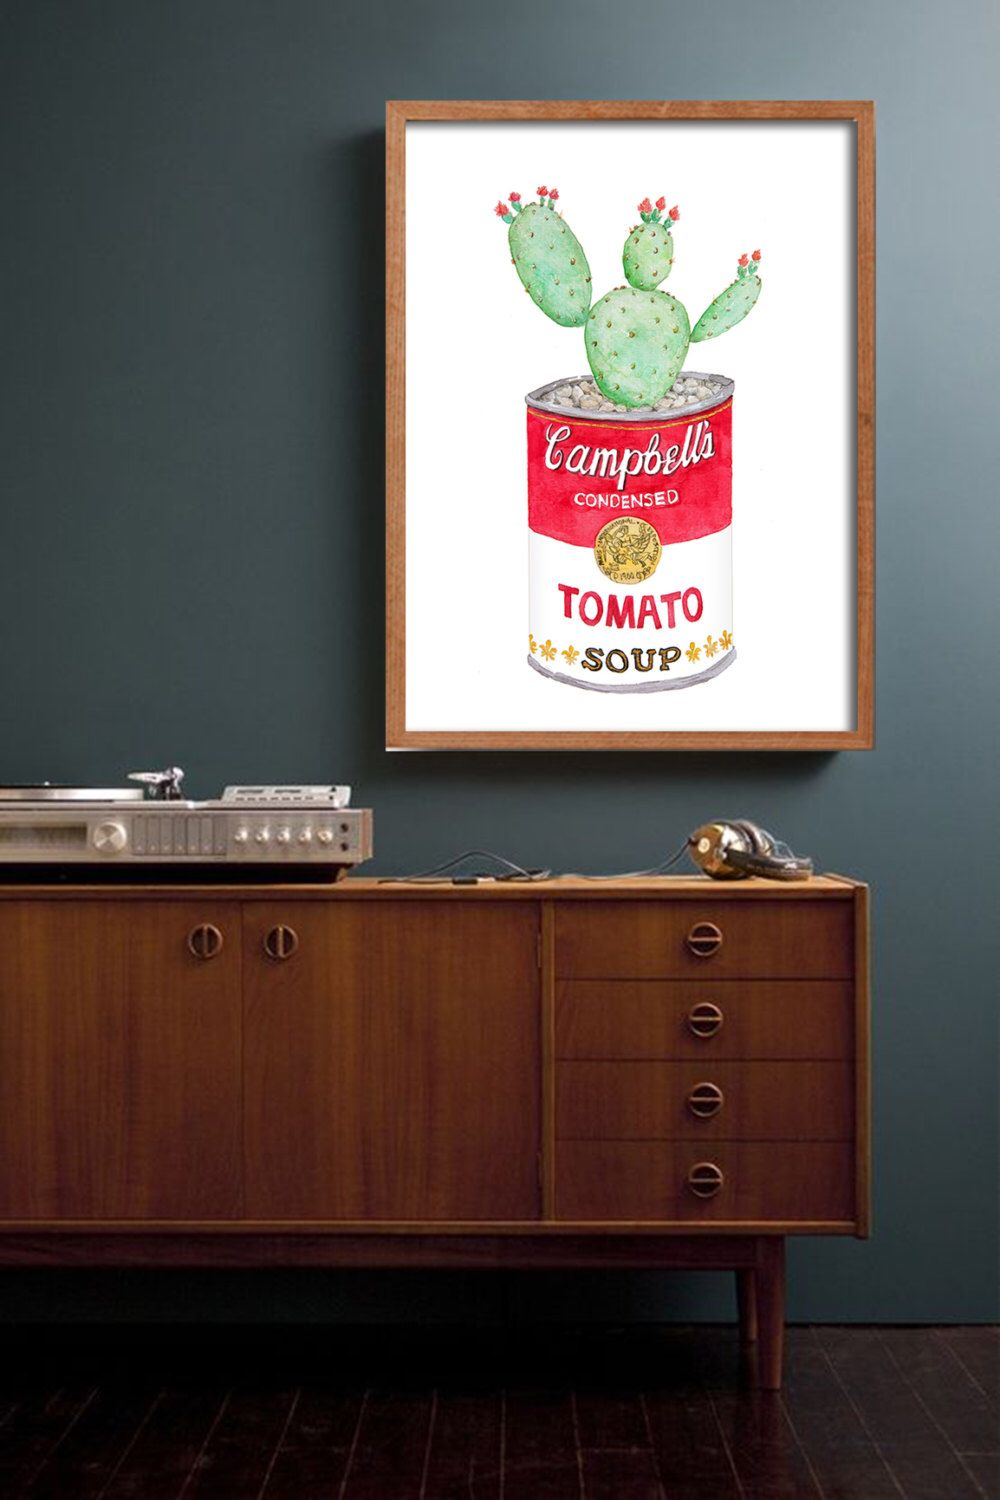 Campbellu0027s Soup Cactus Poster PRINTABLE FILE: Andy Warhol Inspired Campbell,  Kitchen Decor, Retro Kitchen, Kitchen Art, Cactus Art,food Art